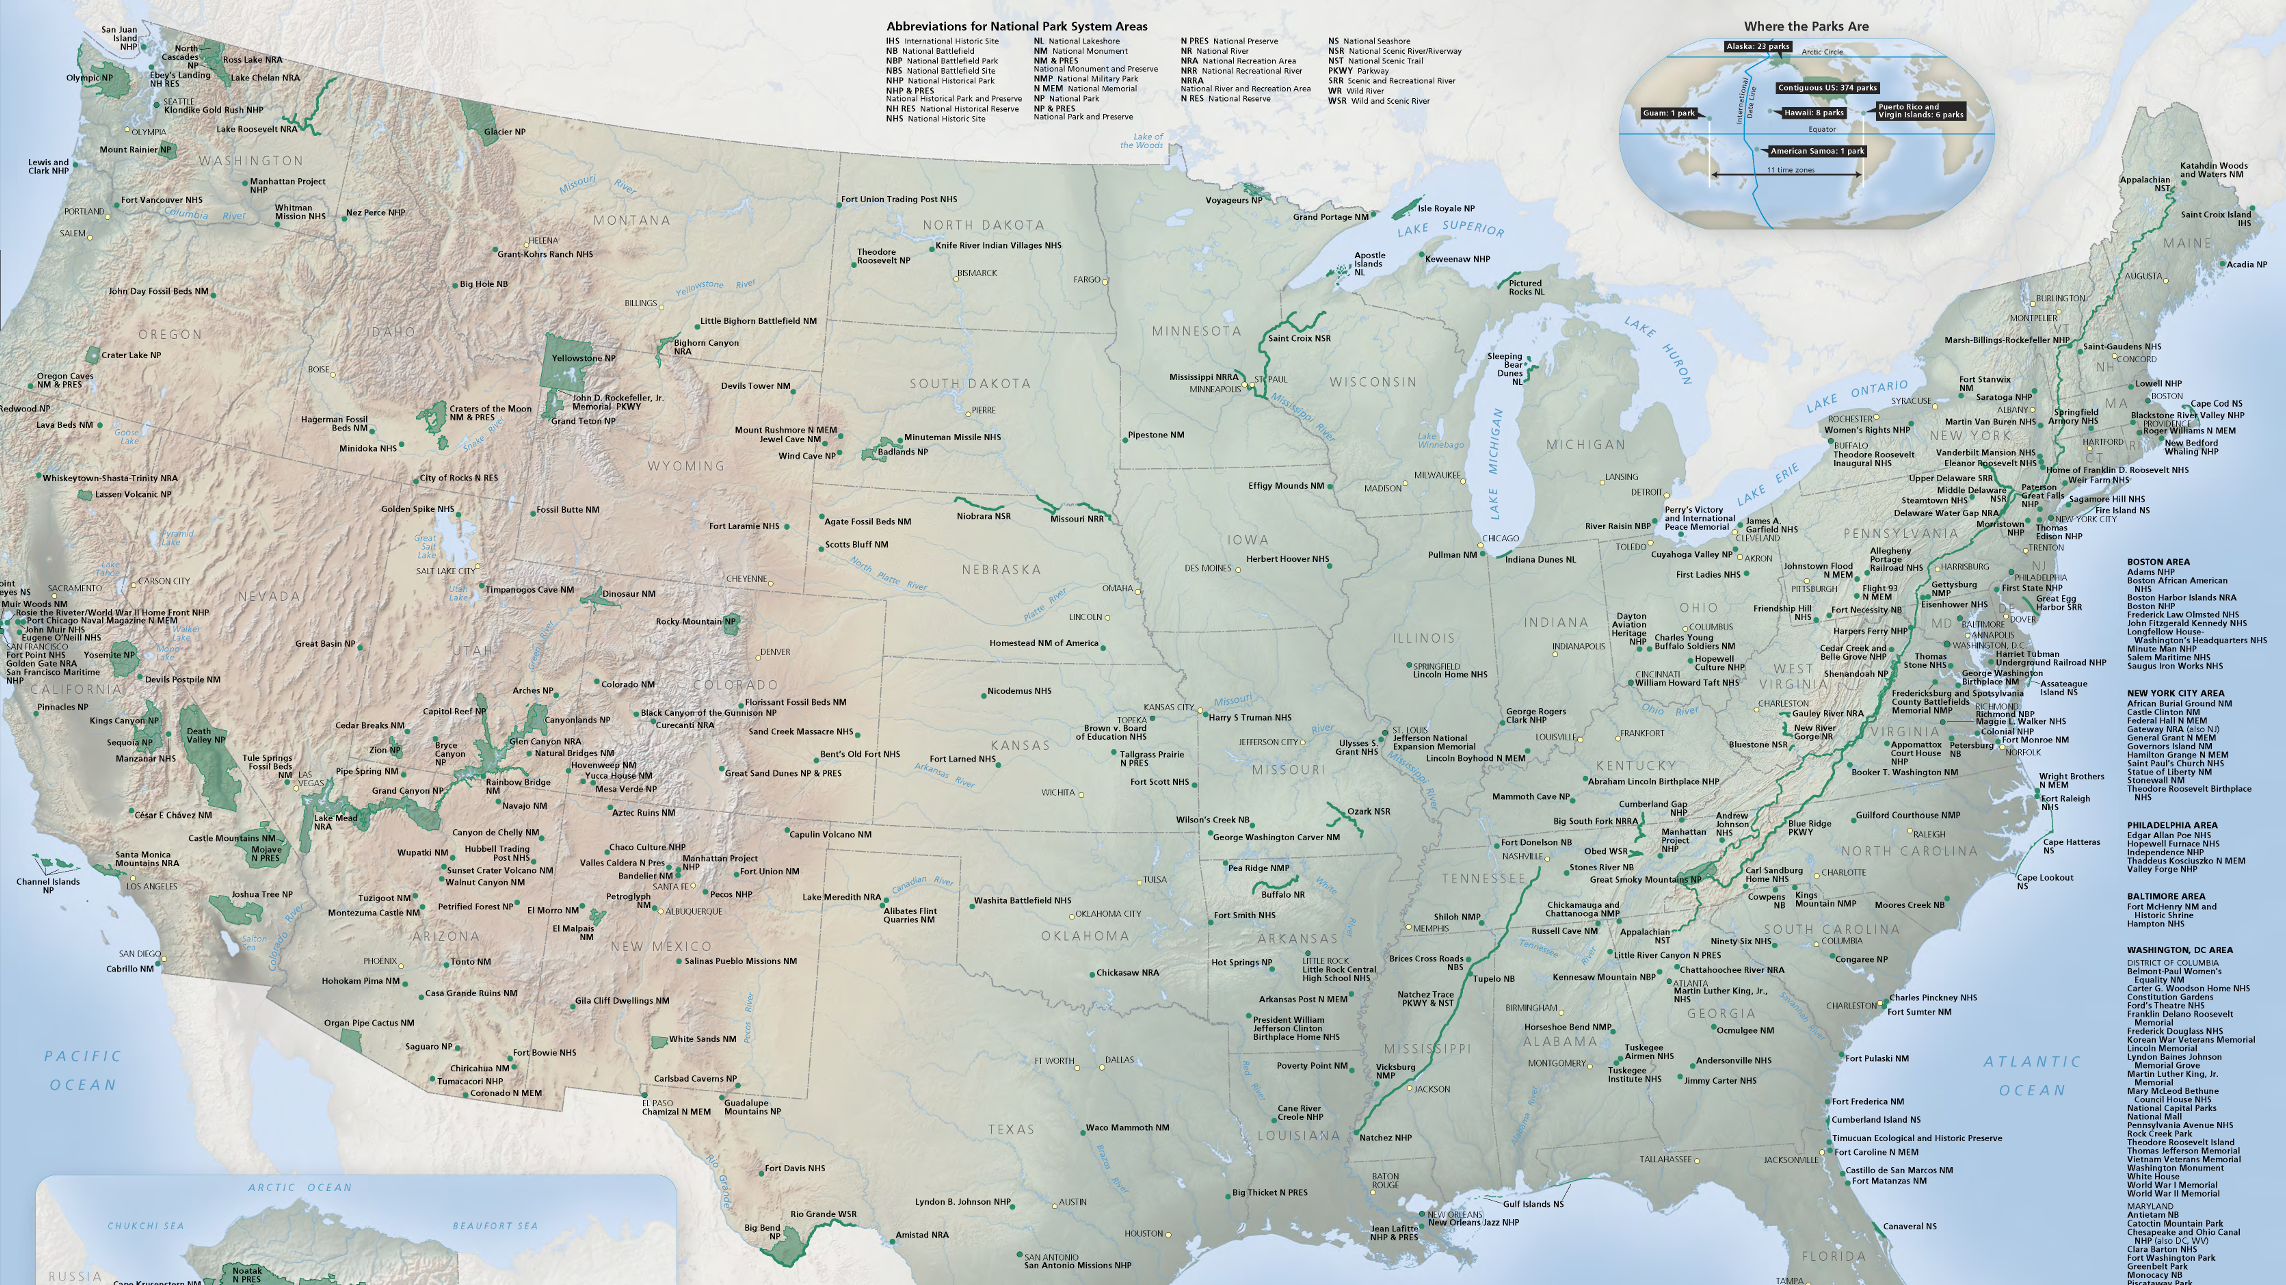 Map of national parks across the United States